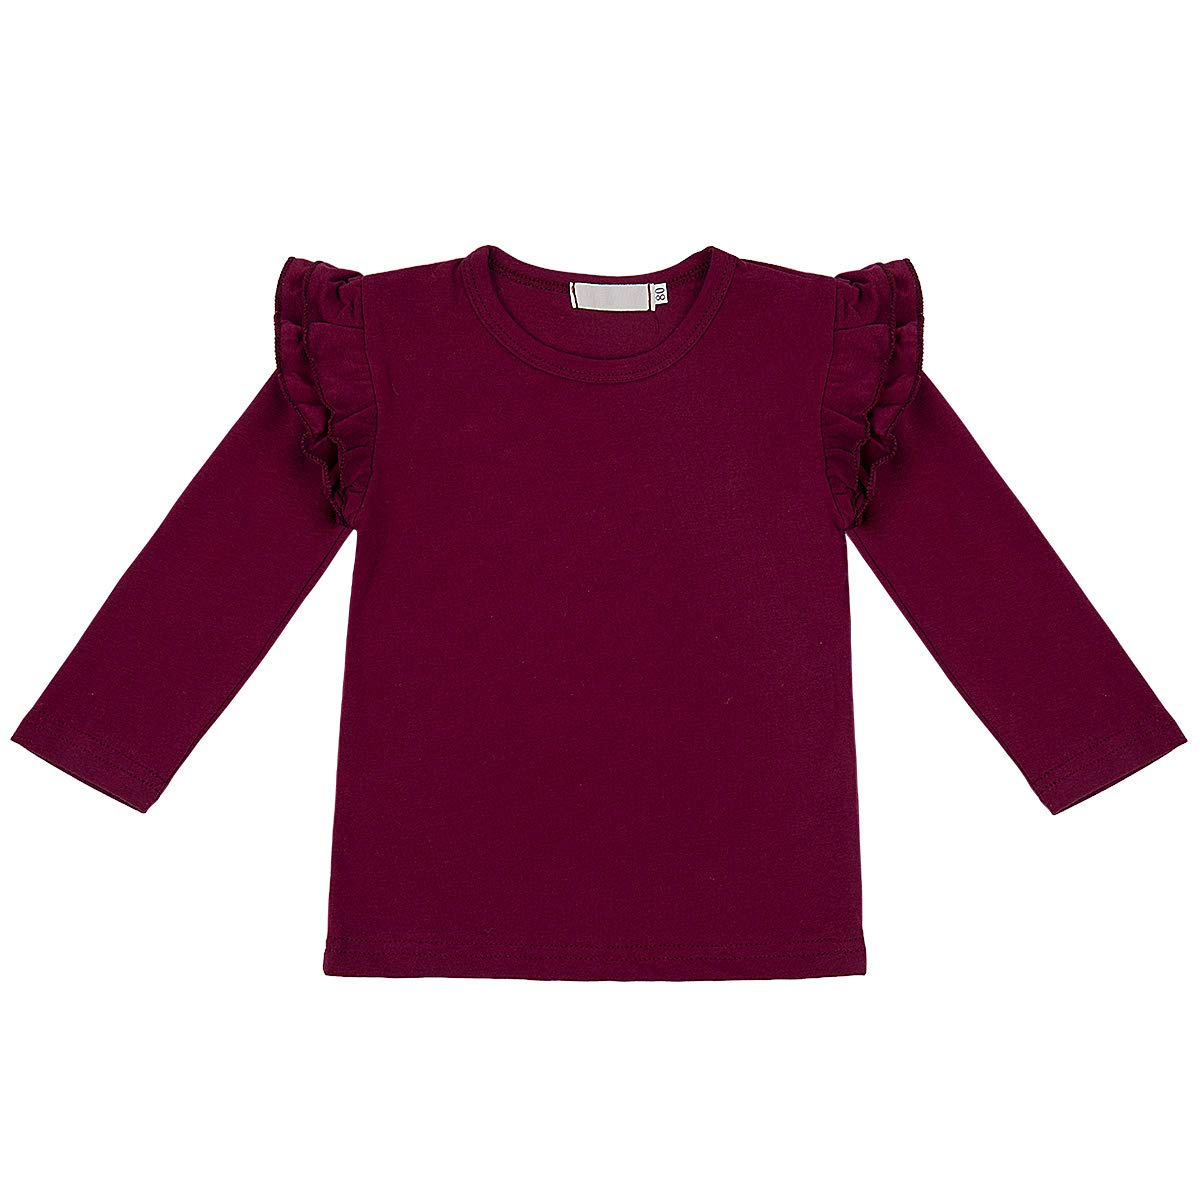 6cd93e80dbb Amazon.com  IMEKIS Baby Girls Ruffle Fly Wing Long Sleeve Tops T Shirts  Toddler Kids Basic Plain Cotton Tee Casual Blouse Autumn Clothes  Clothing